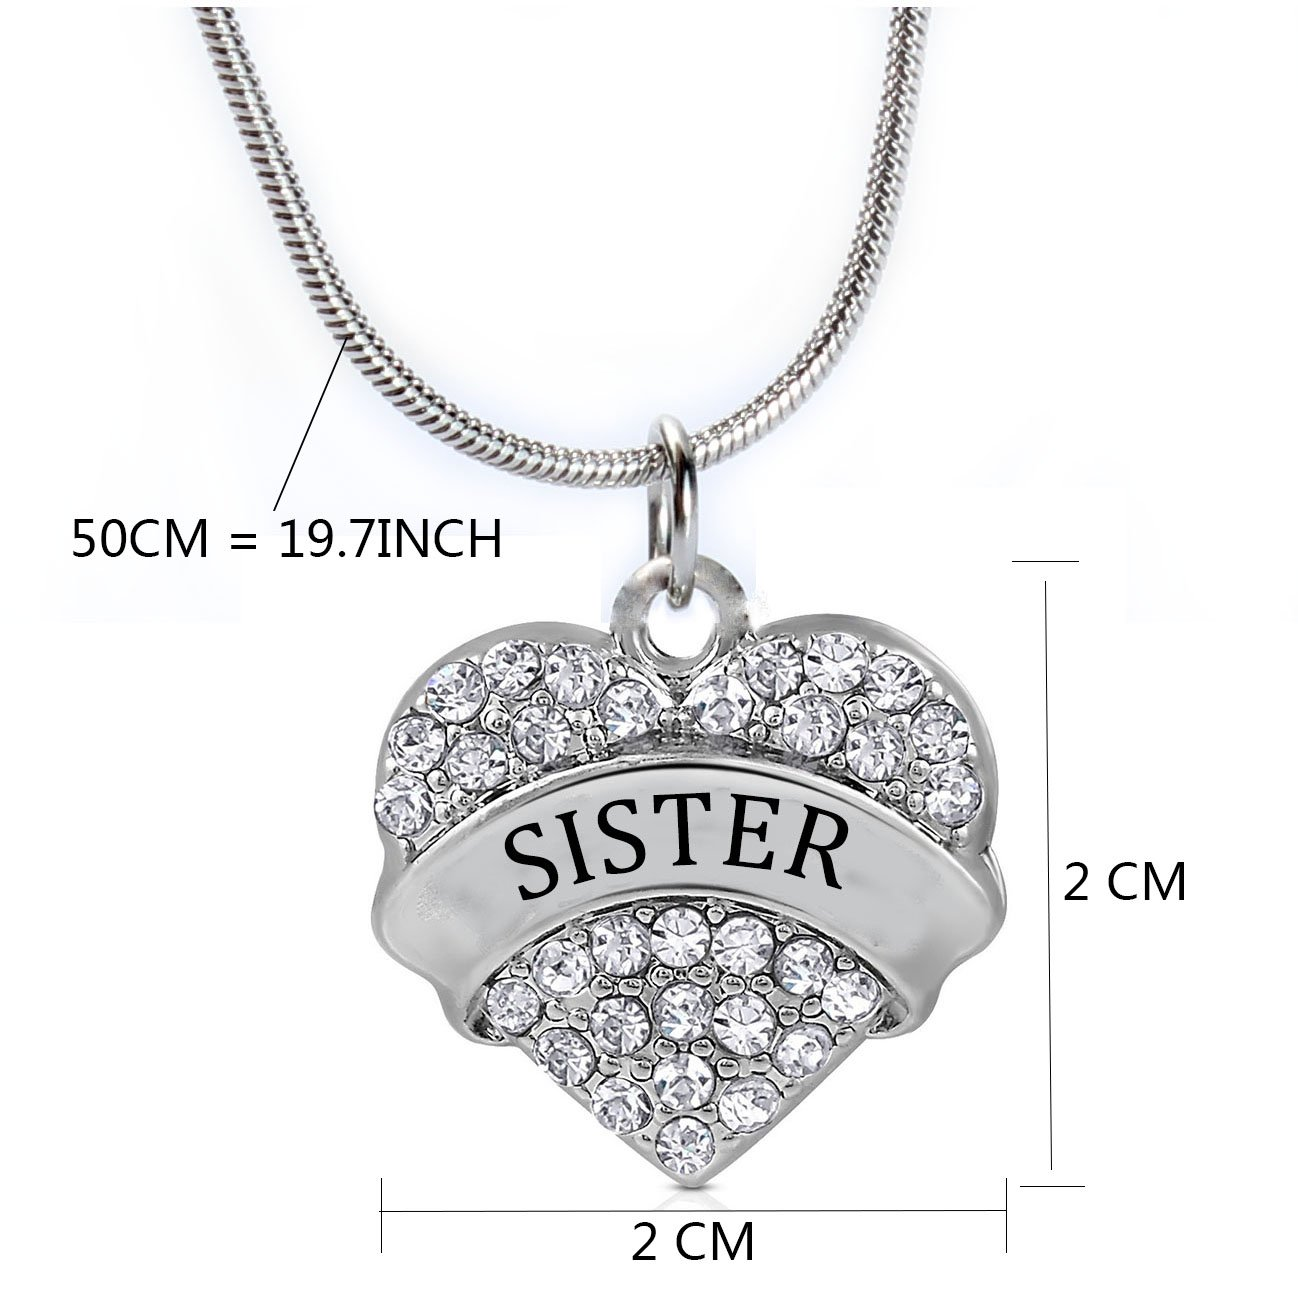 Sister Gifts Heart Pendant Necklace Women Girl - White Crystal Silver Jewelry